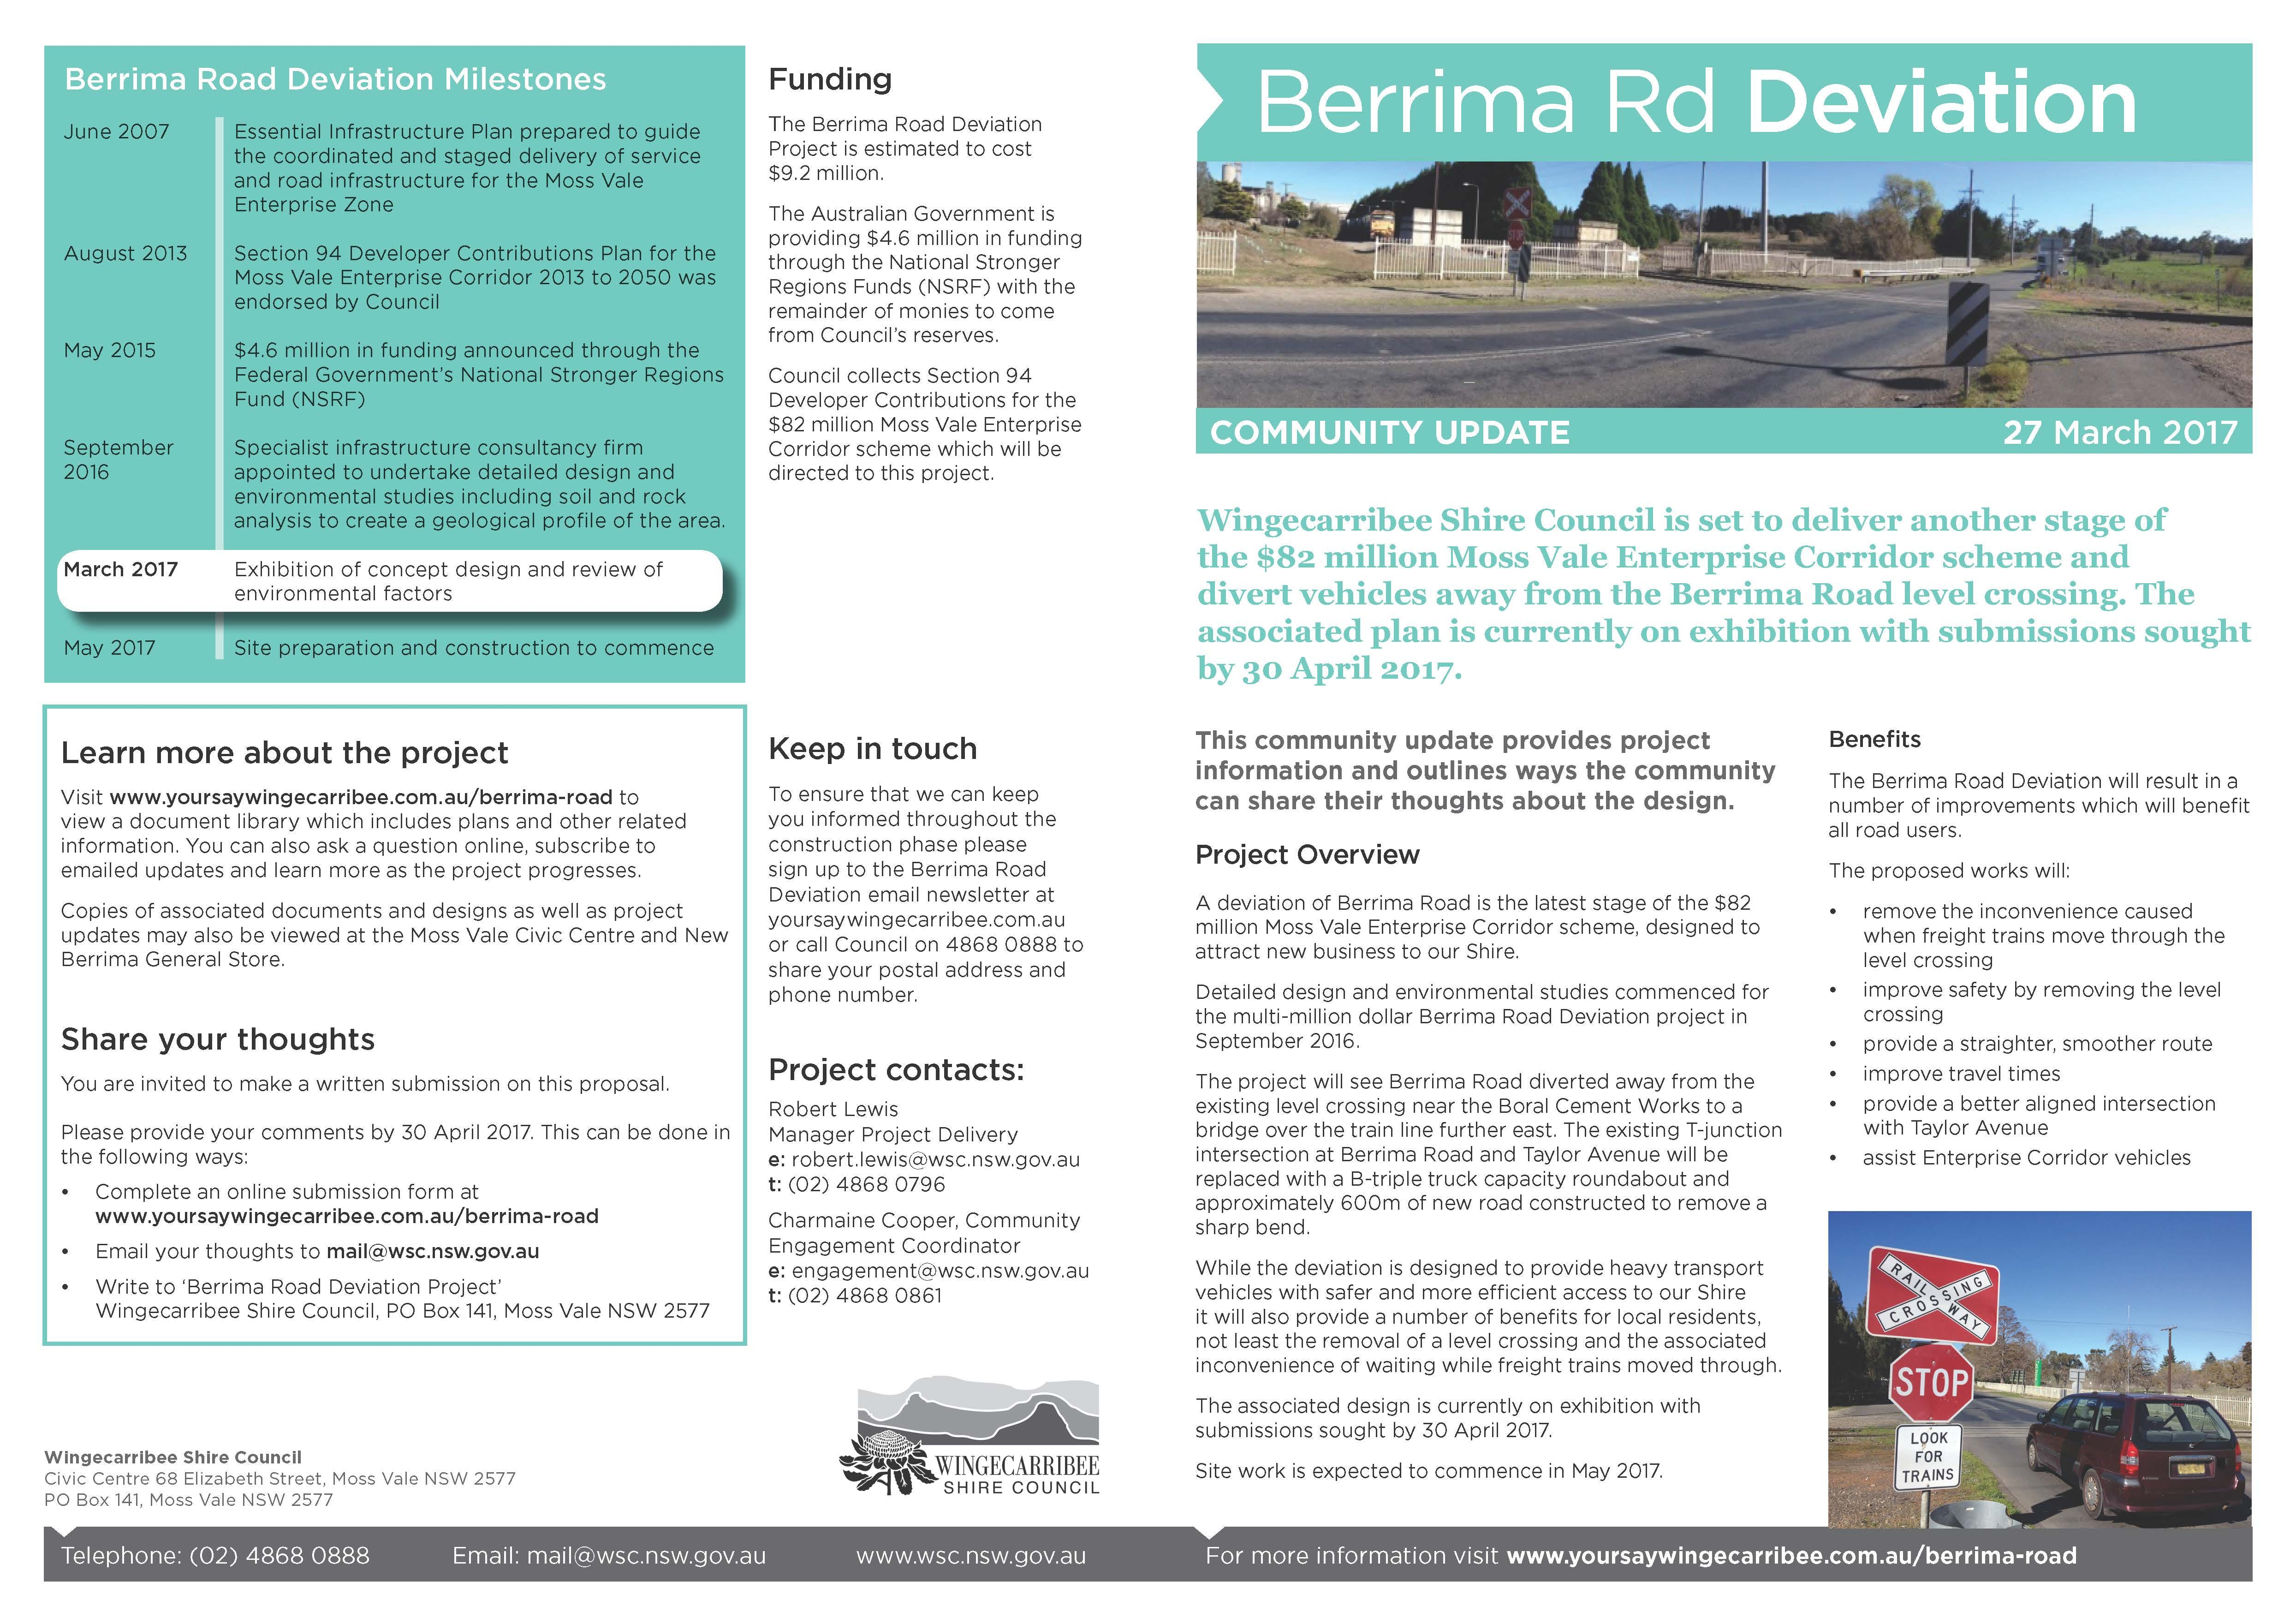 Cover and back page of Community Update - 27 March 2017